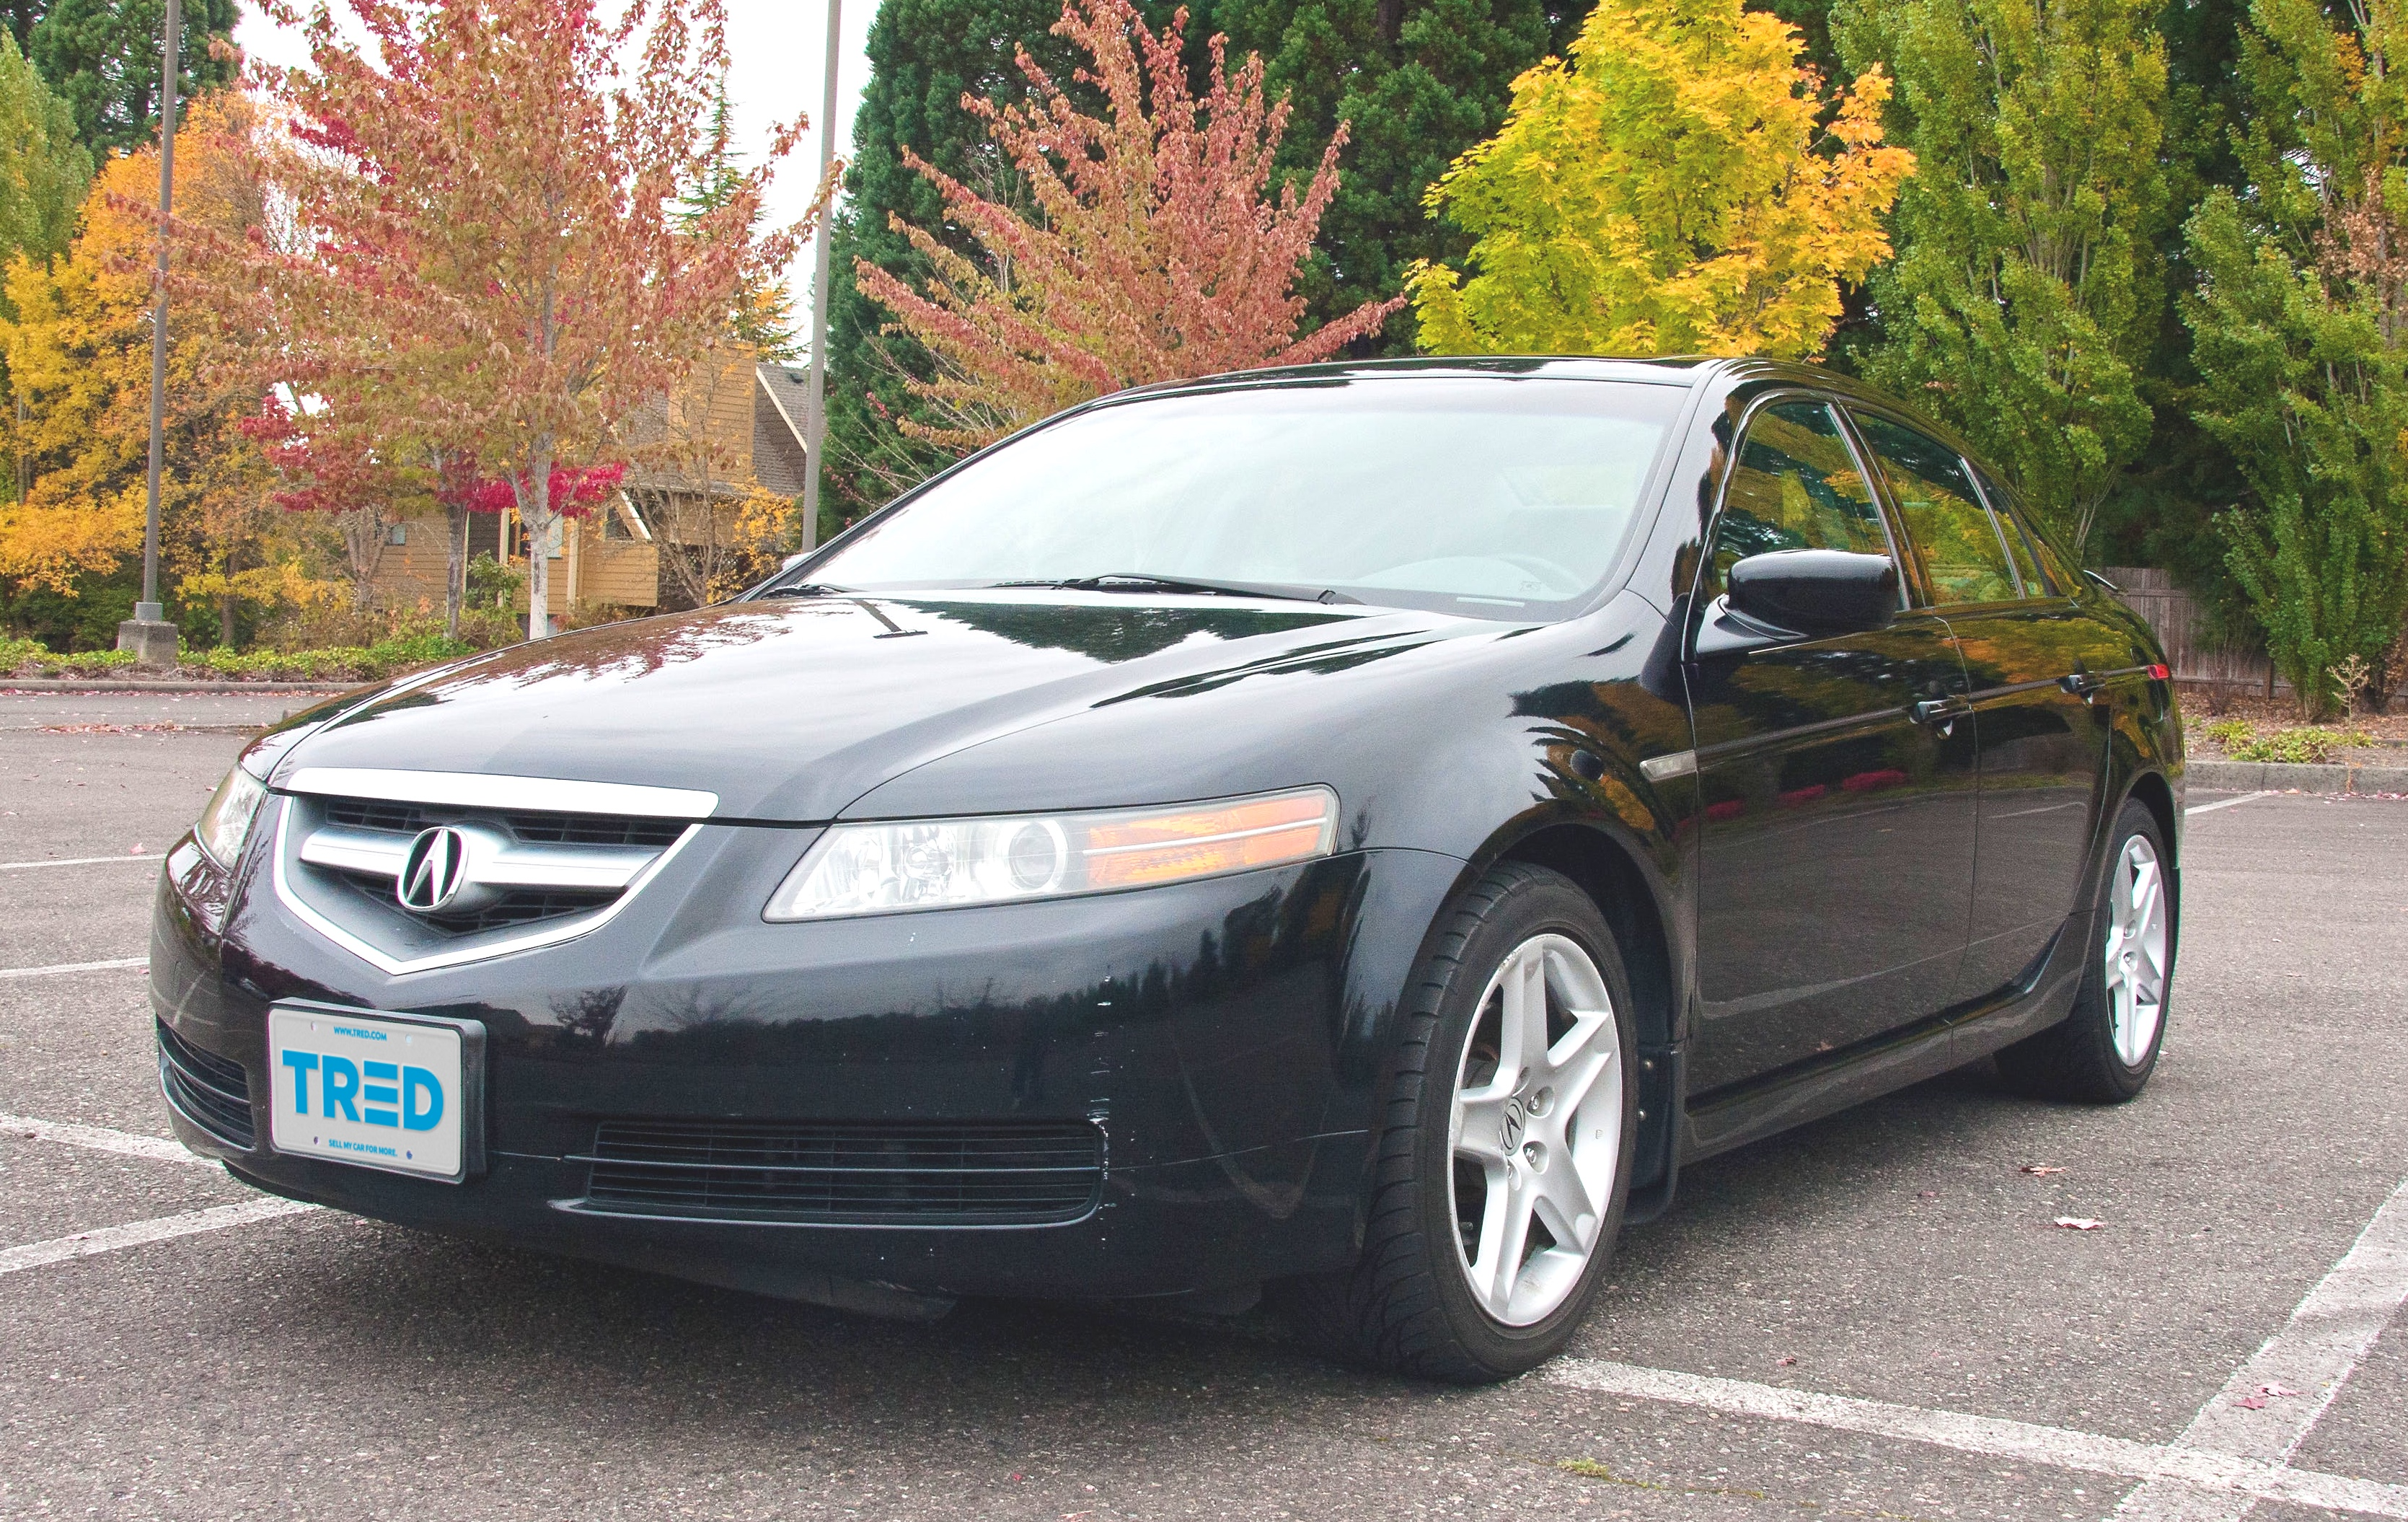 used 2004 acura tl for sale near nw evergreen pkwy aloha or tred rh tred com 2004 Acura TL Modded 2004 Acura TL Service Manual